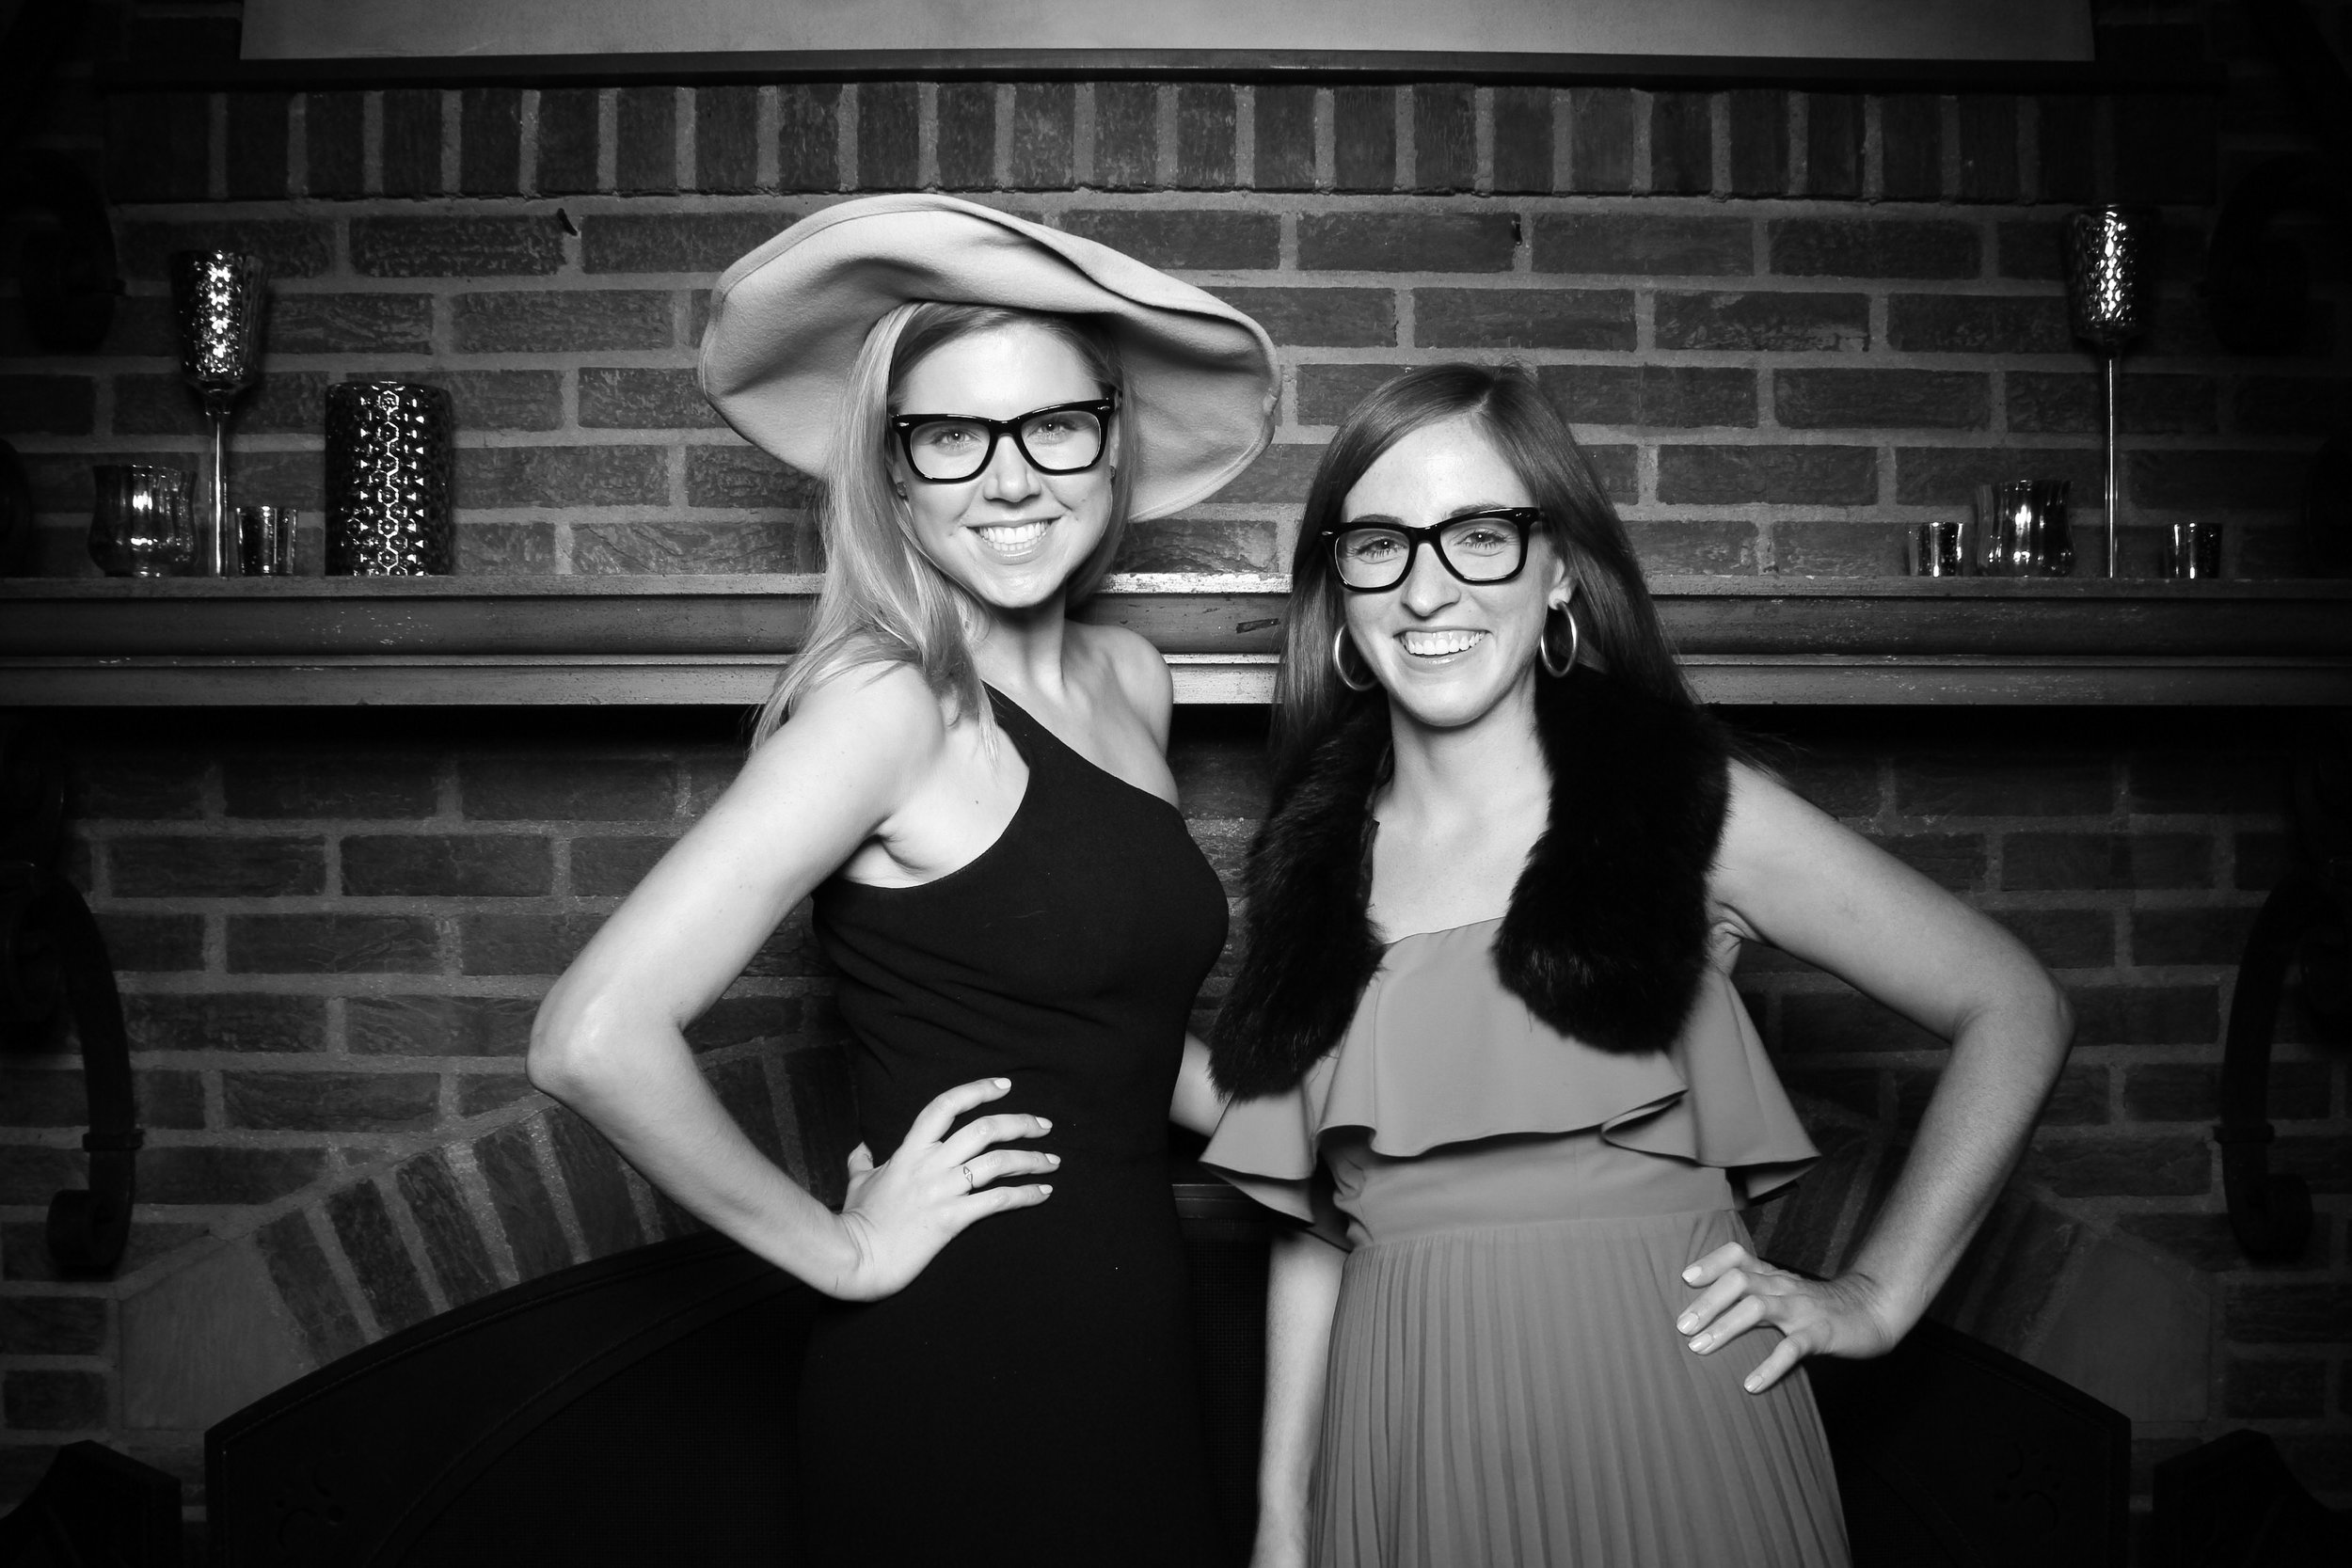 Medinah_Country_Club_Weddng_Reception_Photo_Booth_Cocktail_Hour_Foyer_05.jpg